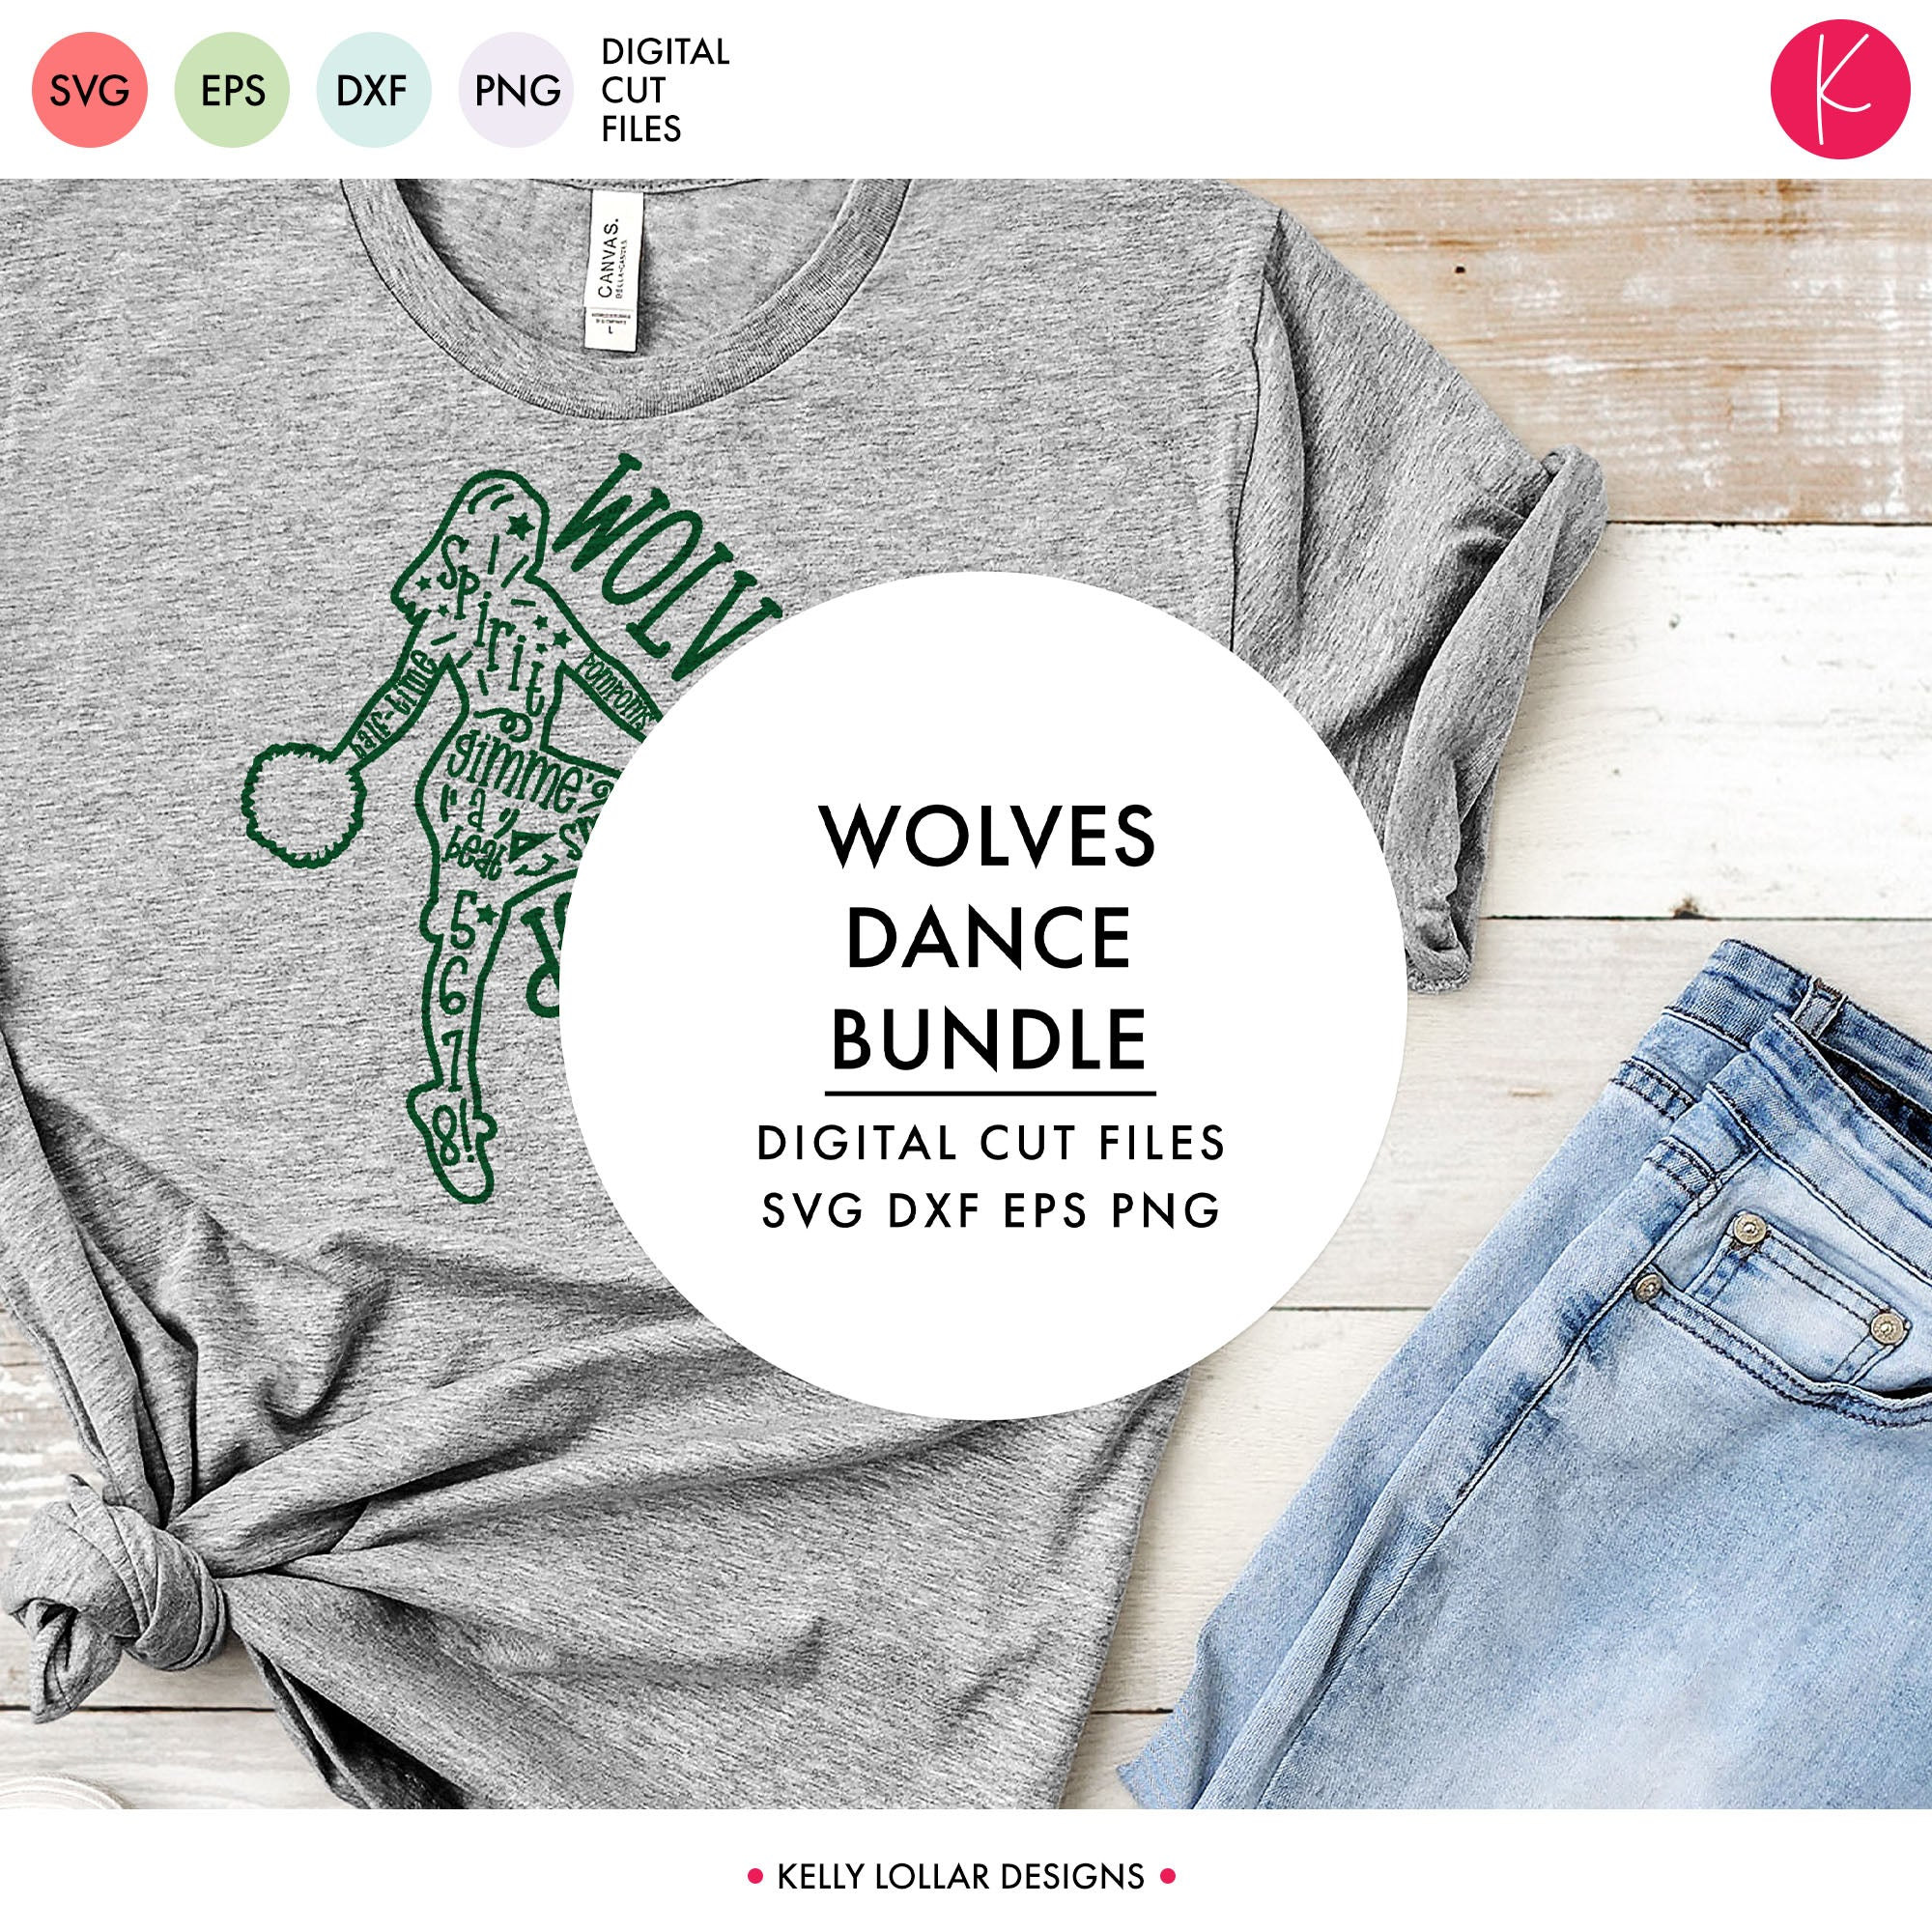 Wolves Dance Bundle | SVG DXF EPS PNG Cut Files